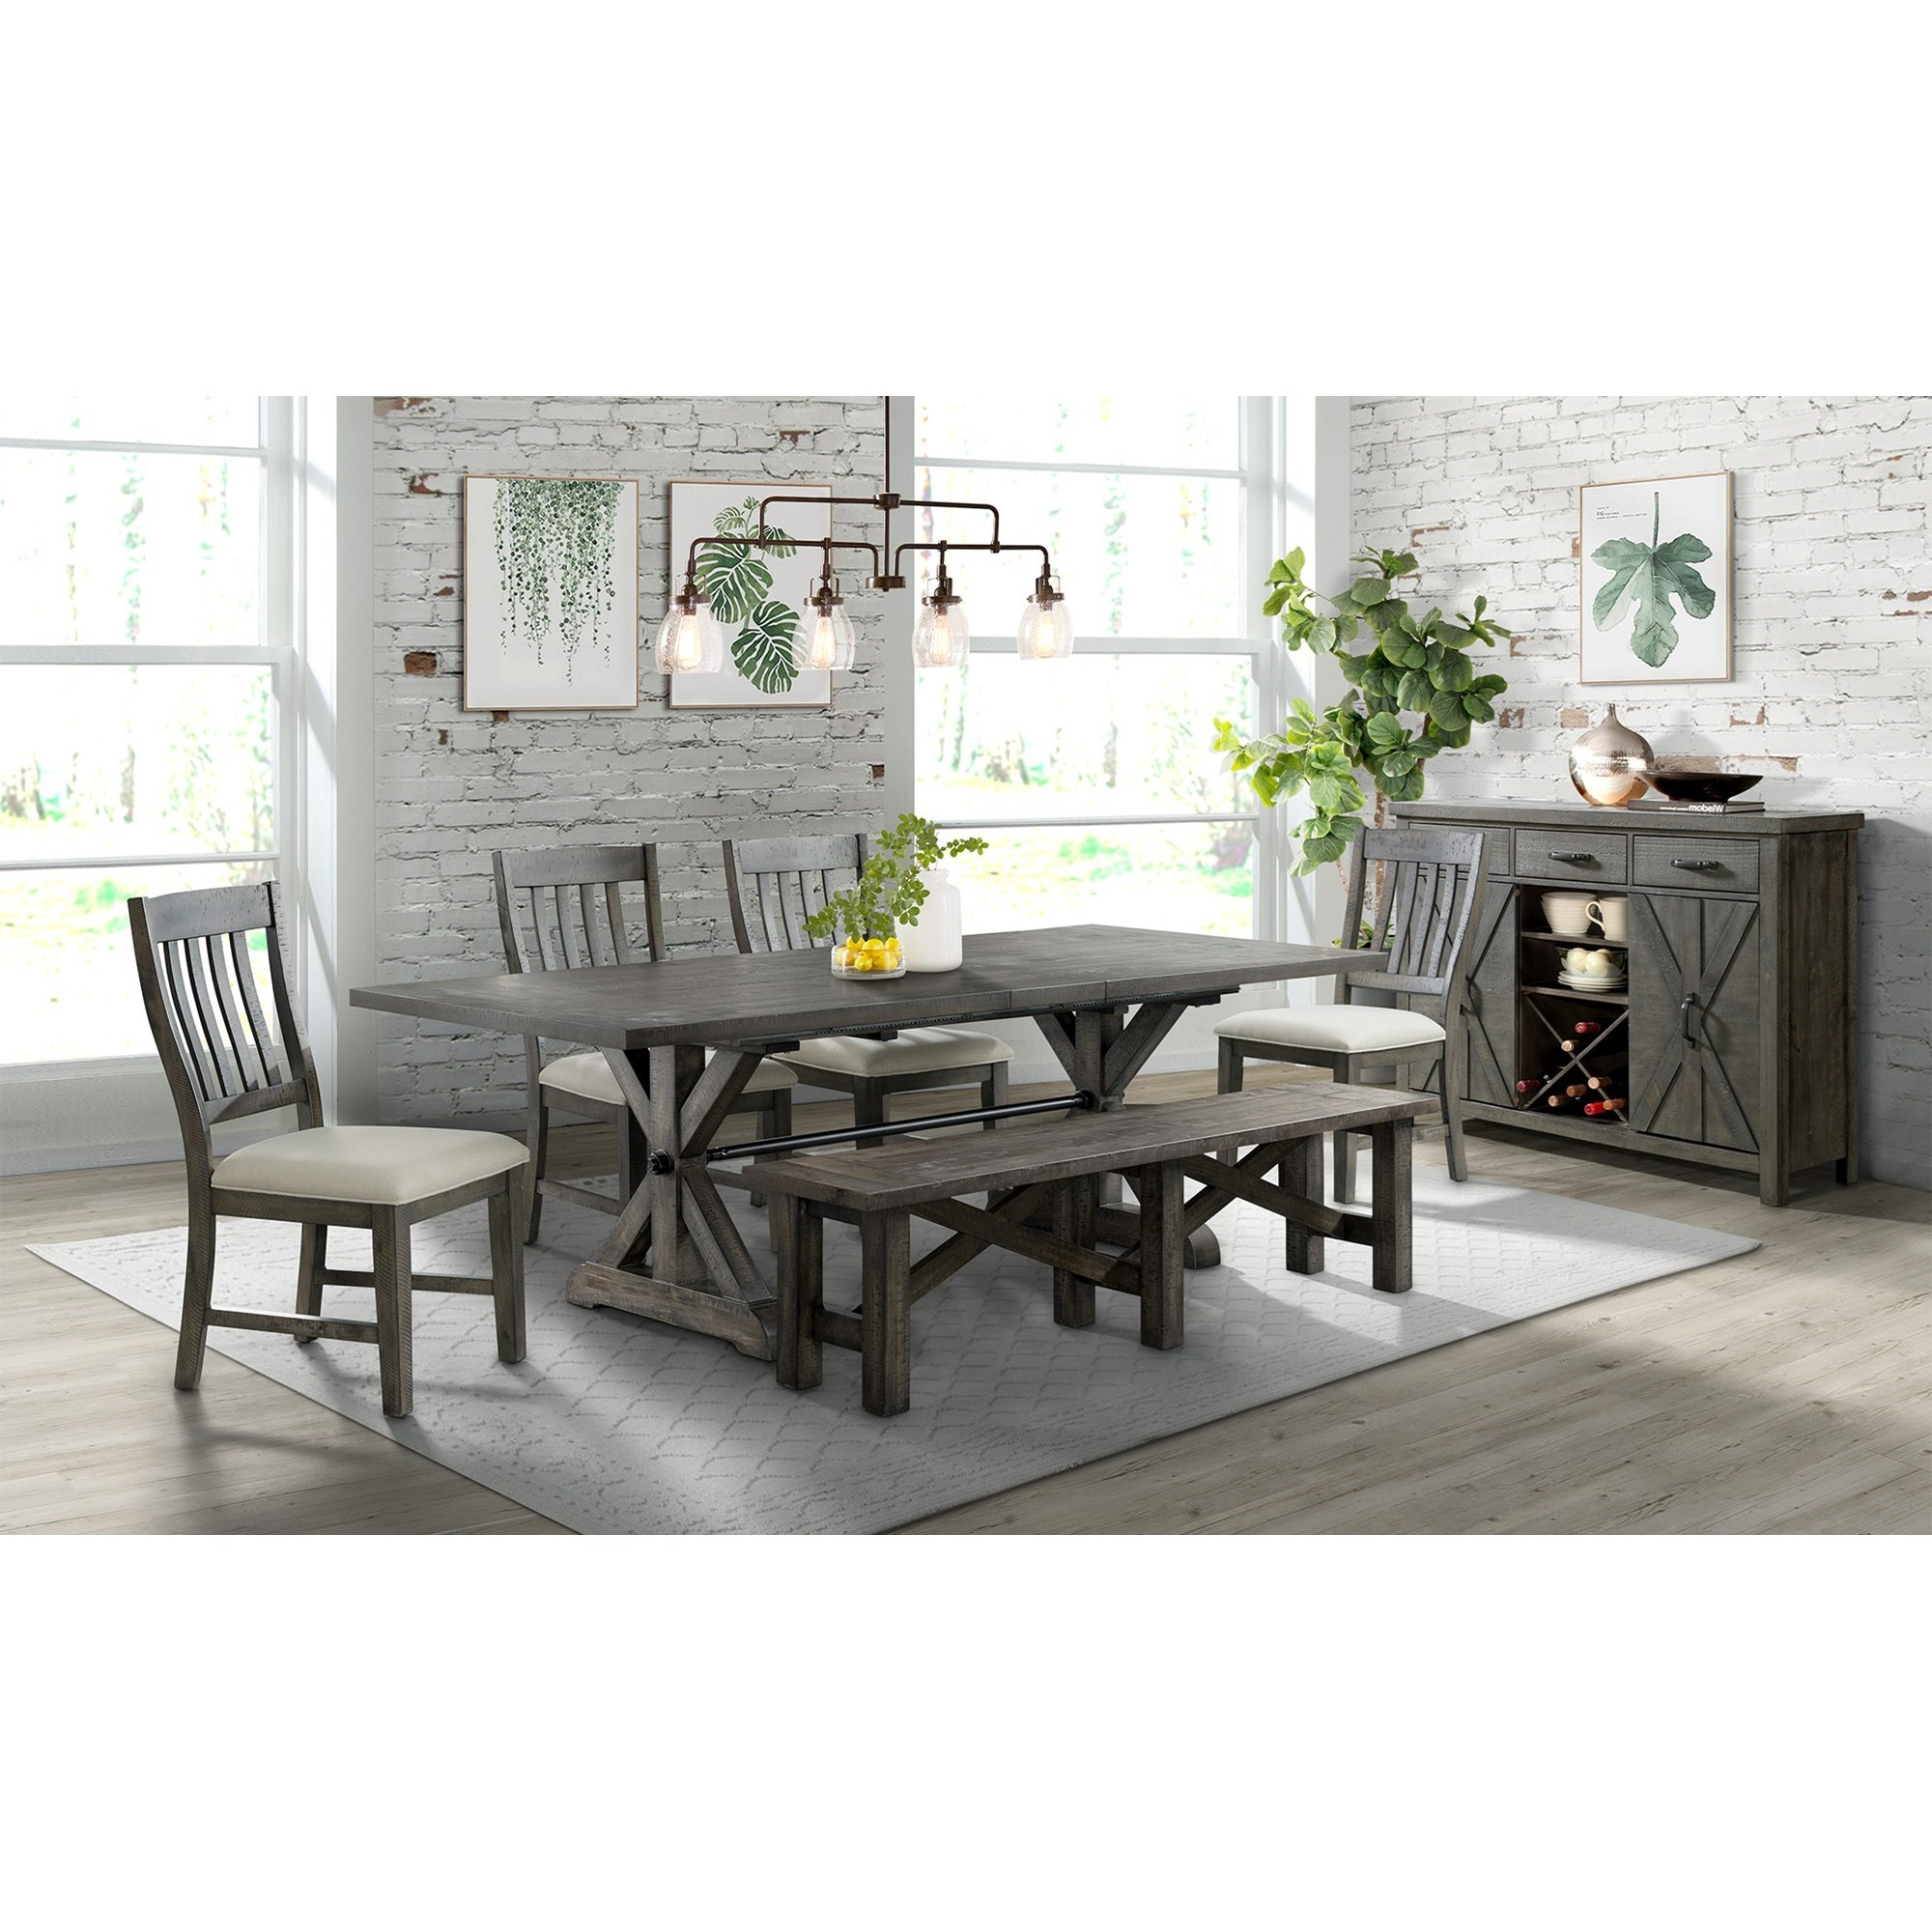 Saw Buck Formal Dining Room Group by Elements International at Wilcox Furniture